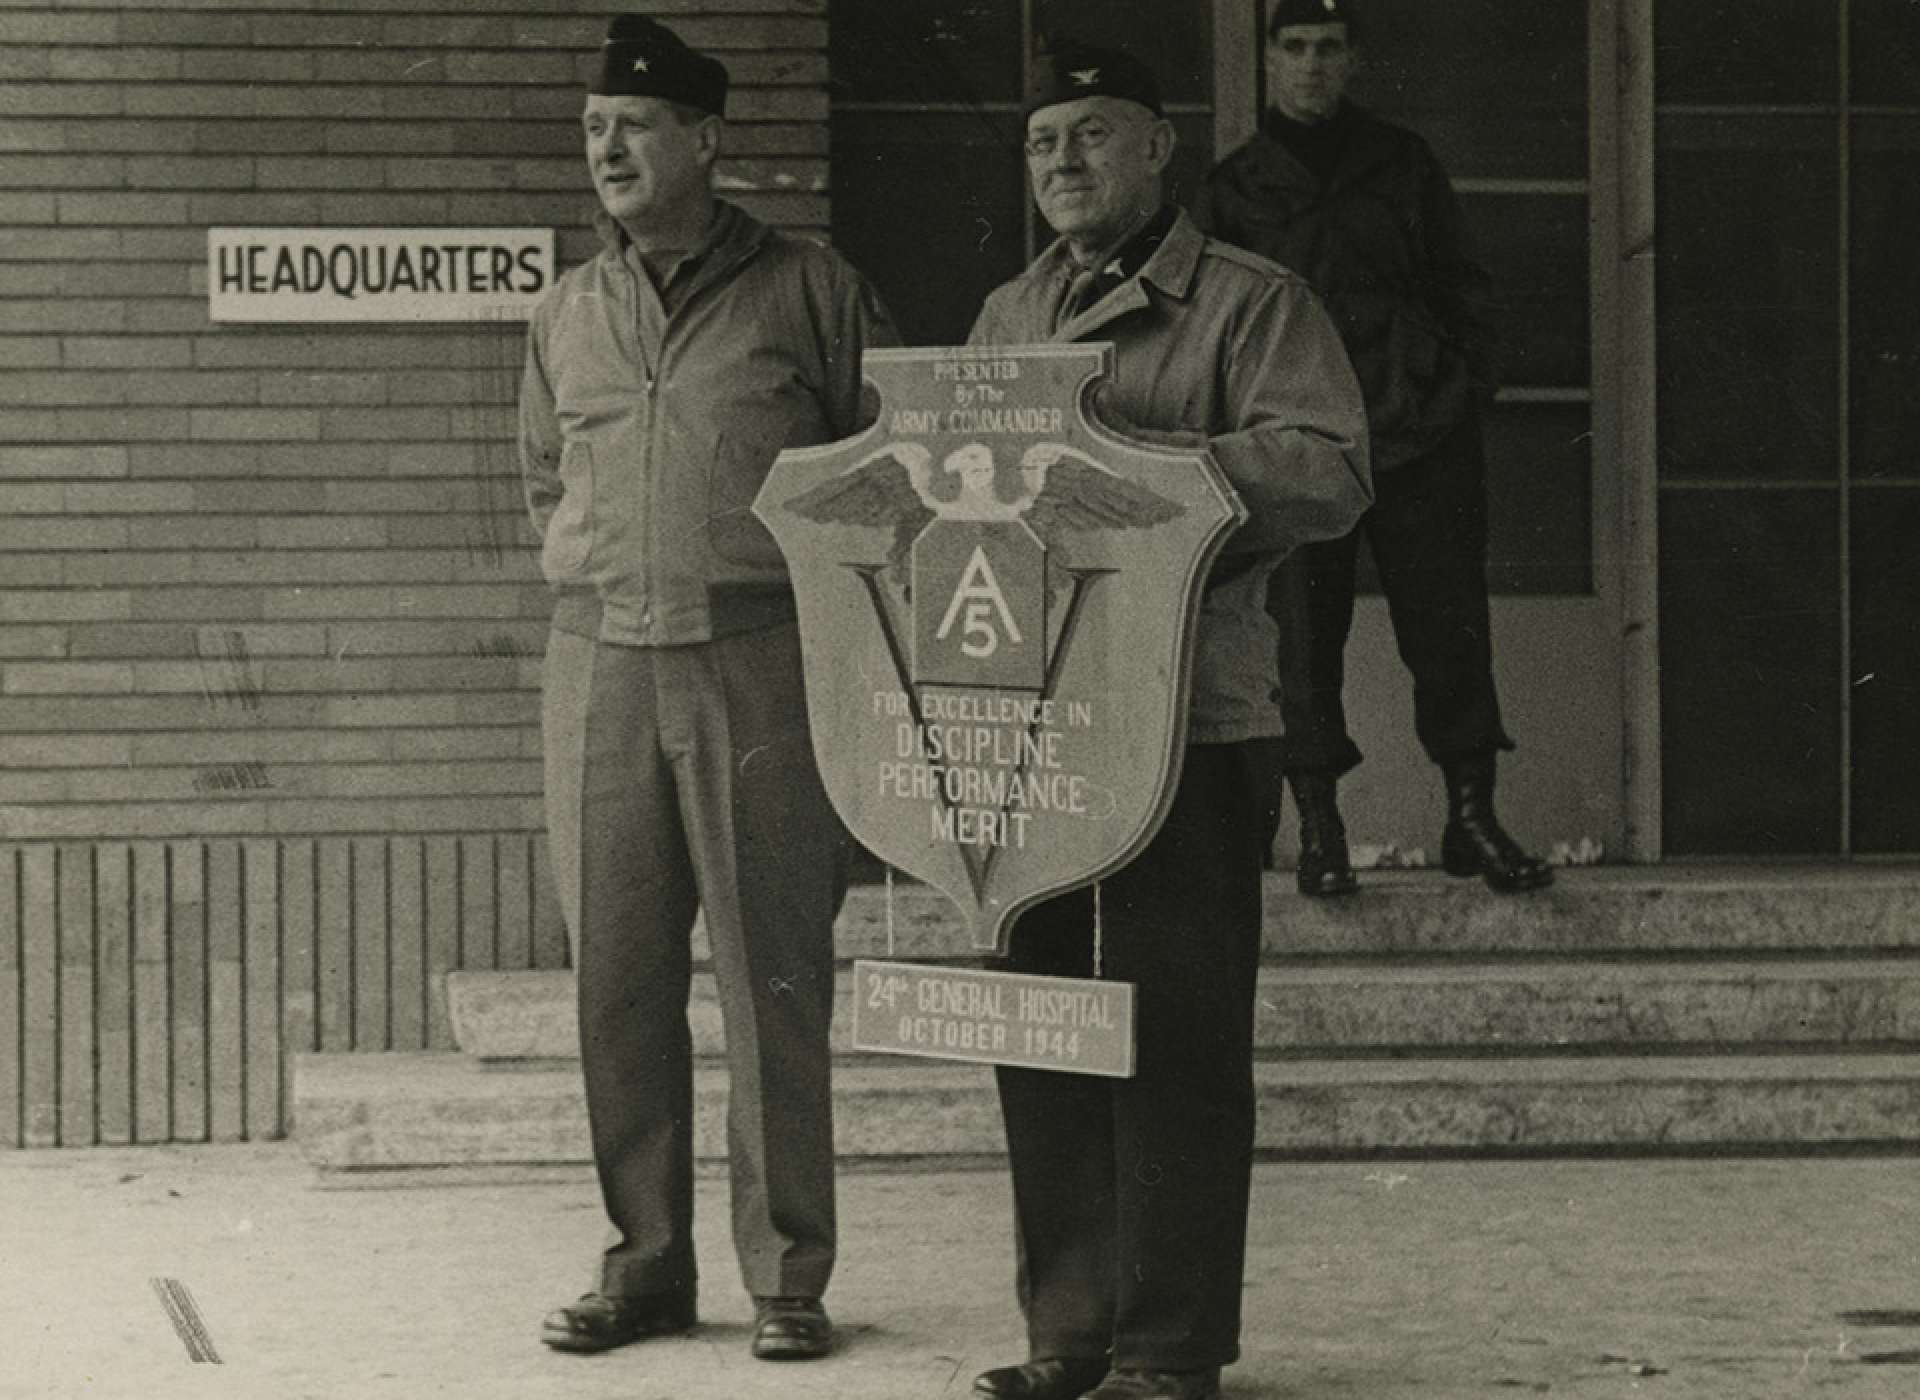 Colonel Walter Clifton Royals, Commanding Officer of the 24th General Hospital and Tulane doctor holds a plaque awarded to the Tulane Unit for their distinguished service to the 5th Army in Italy. The National WWII Museum.